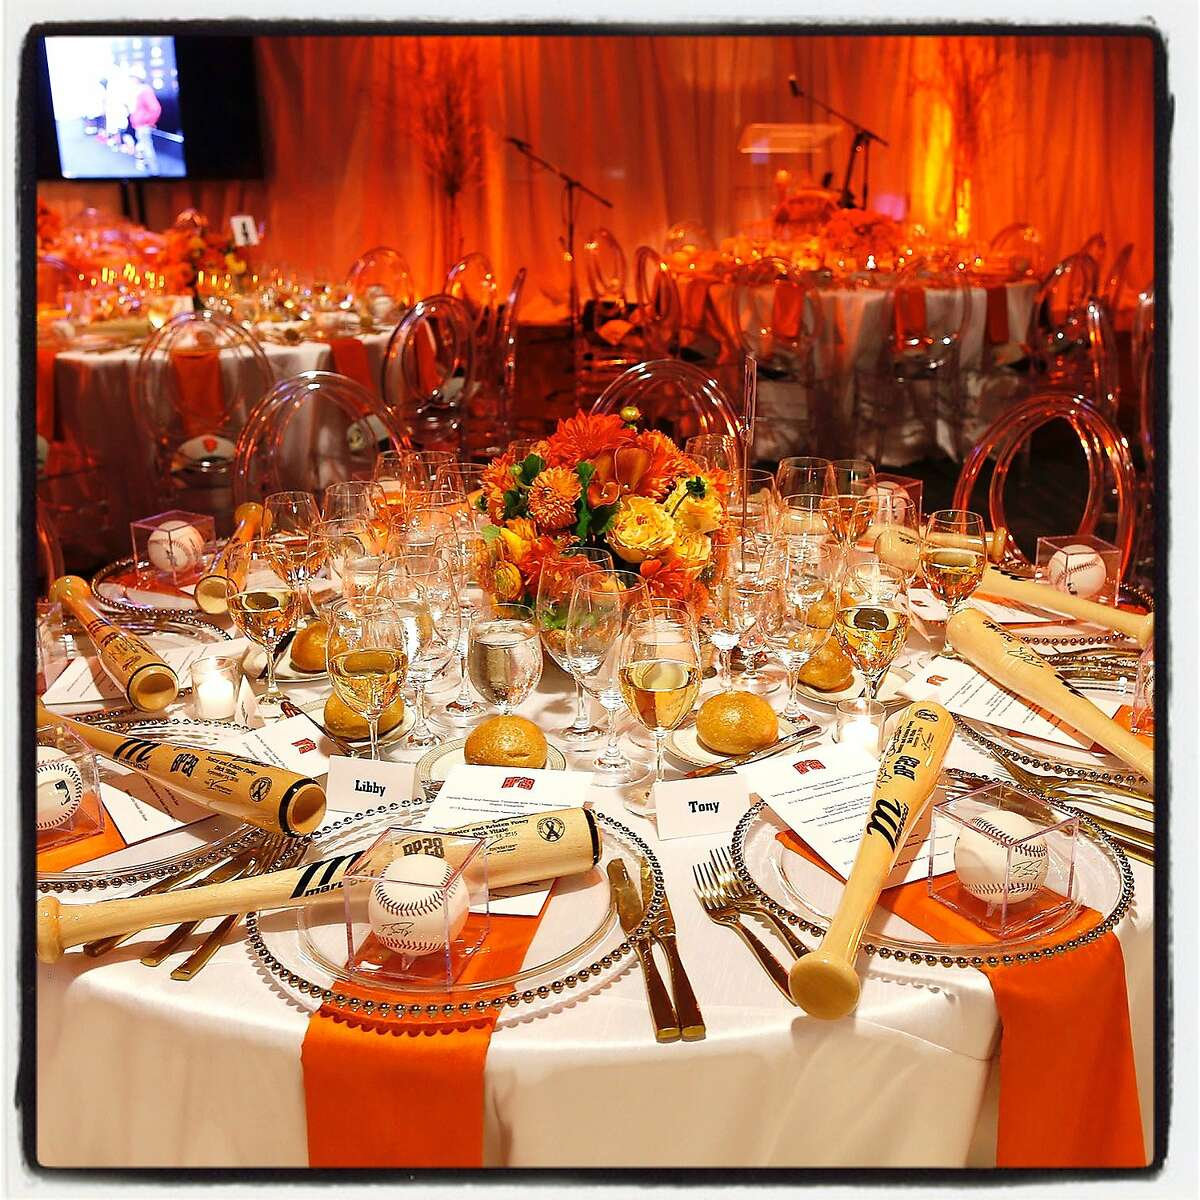 The SF Giants created its inaugural gala at the ballpark to support raising pediatric cancer research funds for the The Posey Family Foundation. Sept 2016.